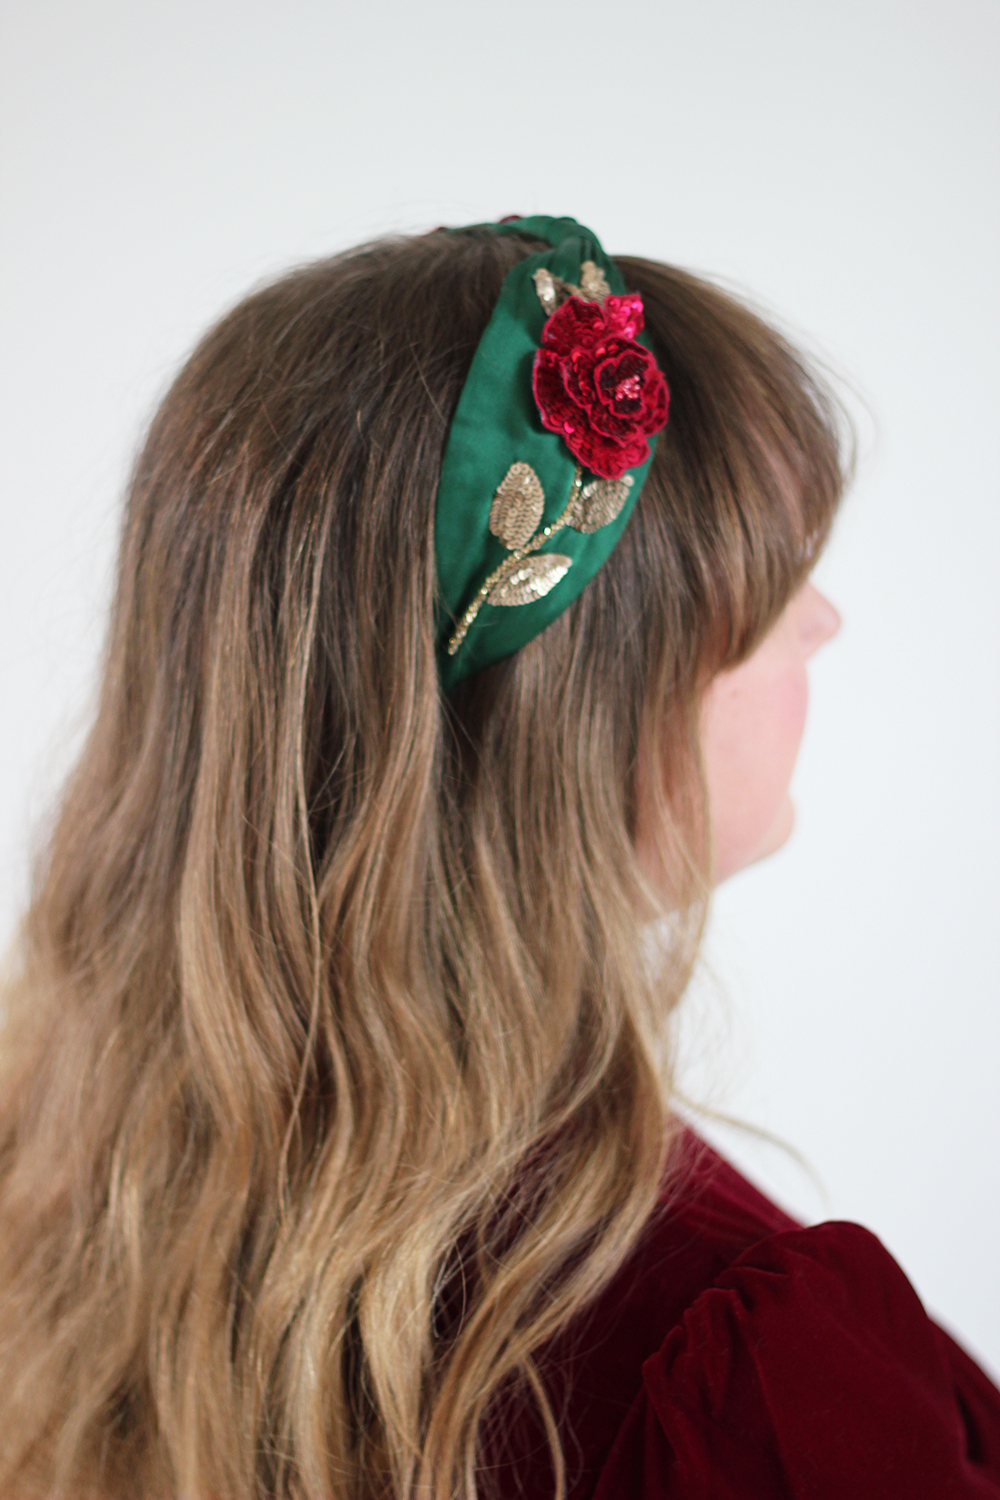 Anthropologie Head Band.jpg